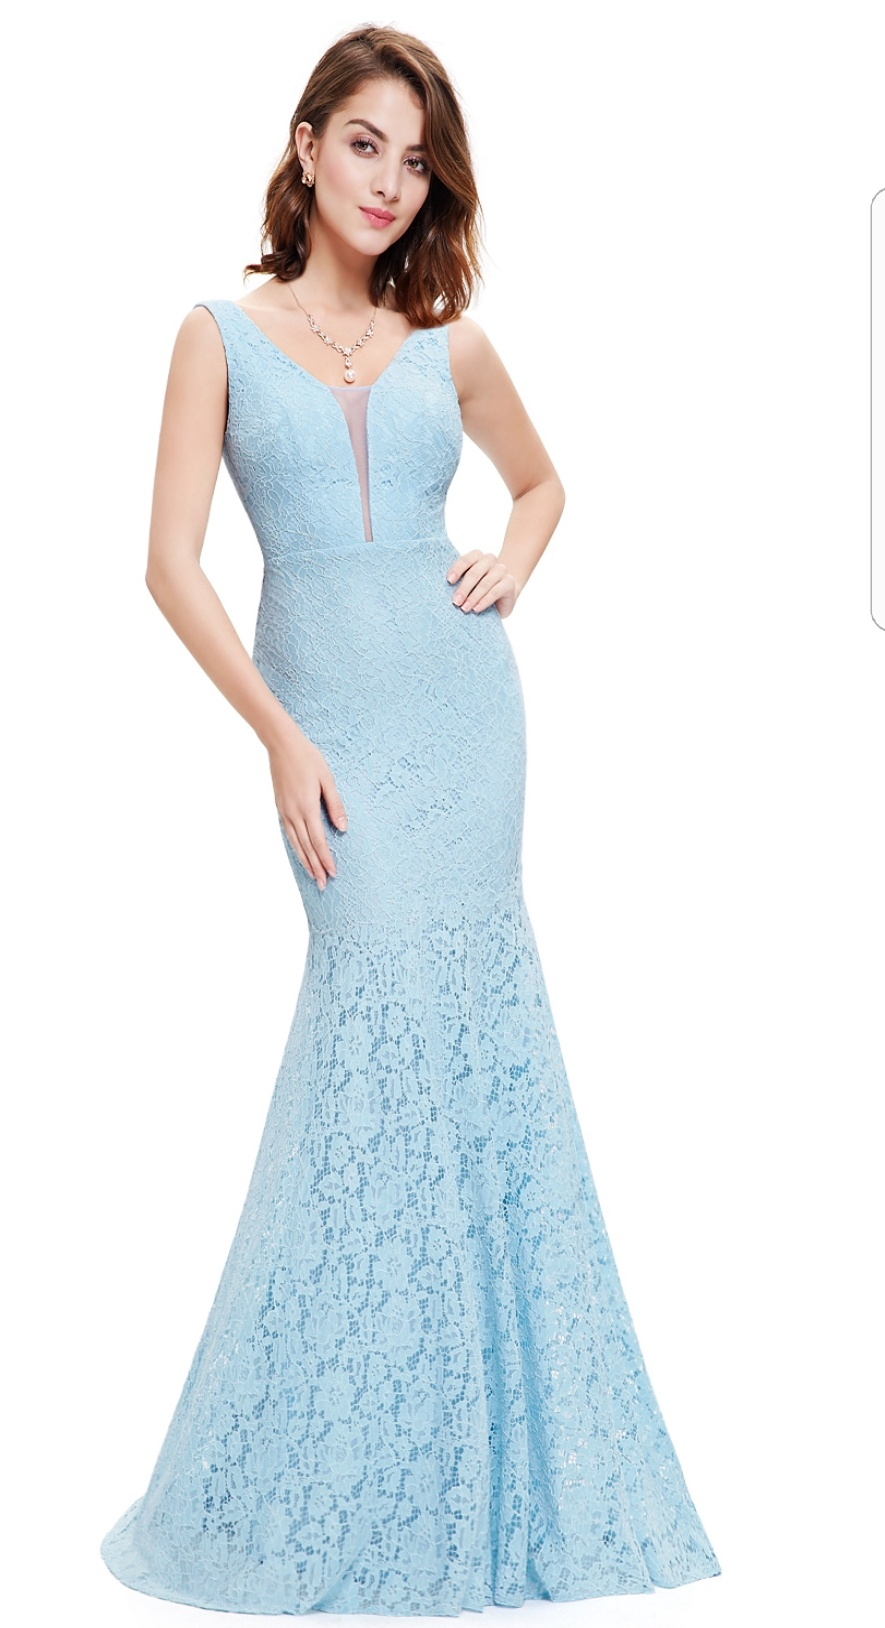 Floor Length Gown - Baby Blue Lace Mermaid Maxi Dress, NEW